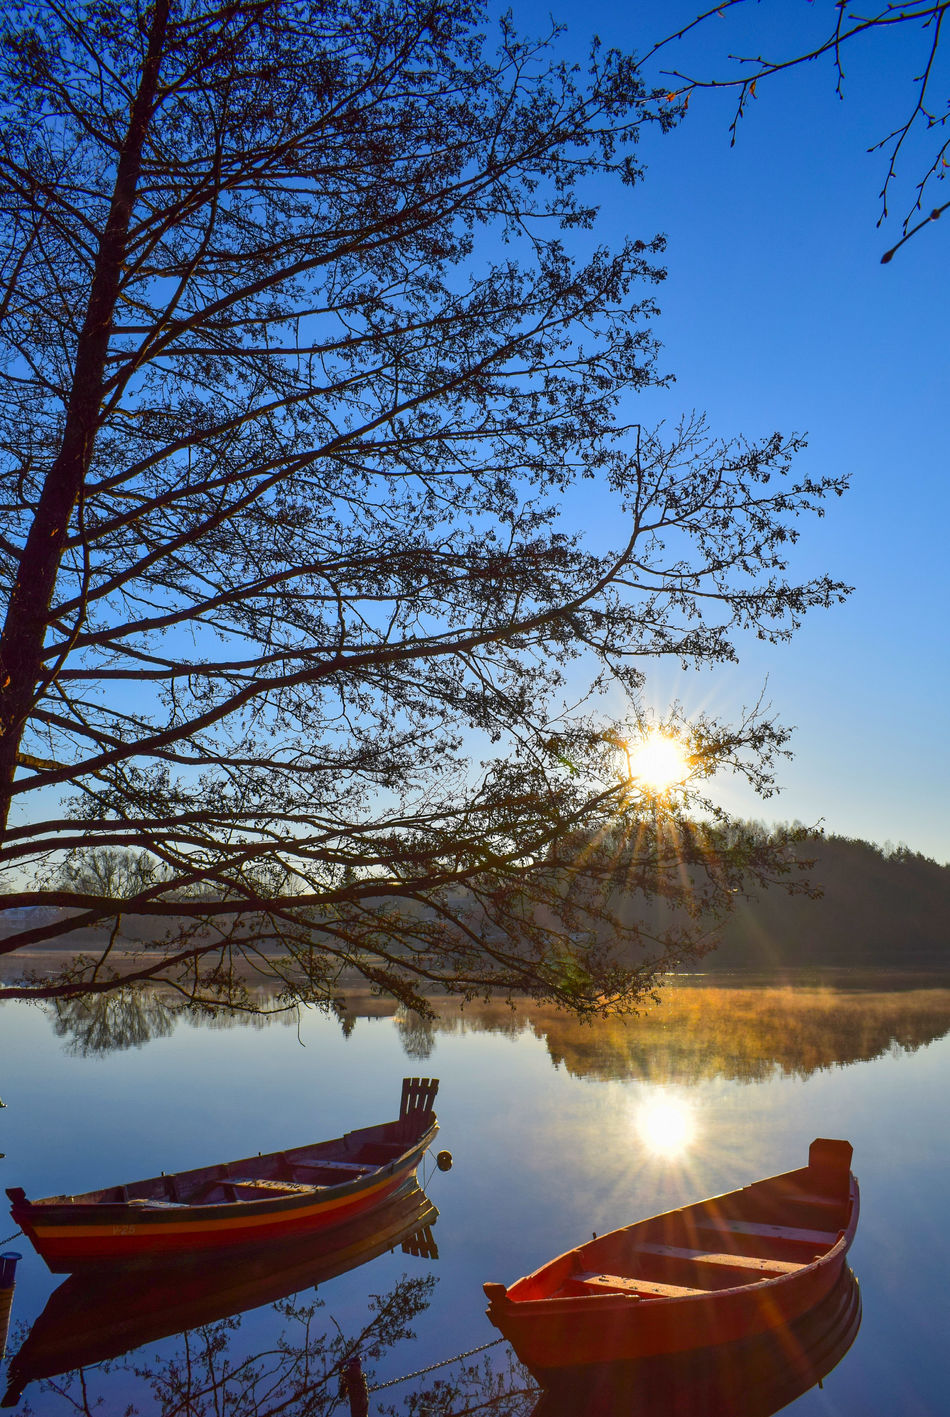 Morning View Lake Reflection Water Sky Boat Reflection Nature Tree Outdoors Tranquility Beauty In Nature Landscape Clear Sky Foggy Lake Lithuania Nature Water Transportation